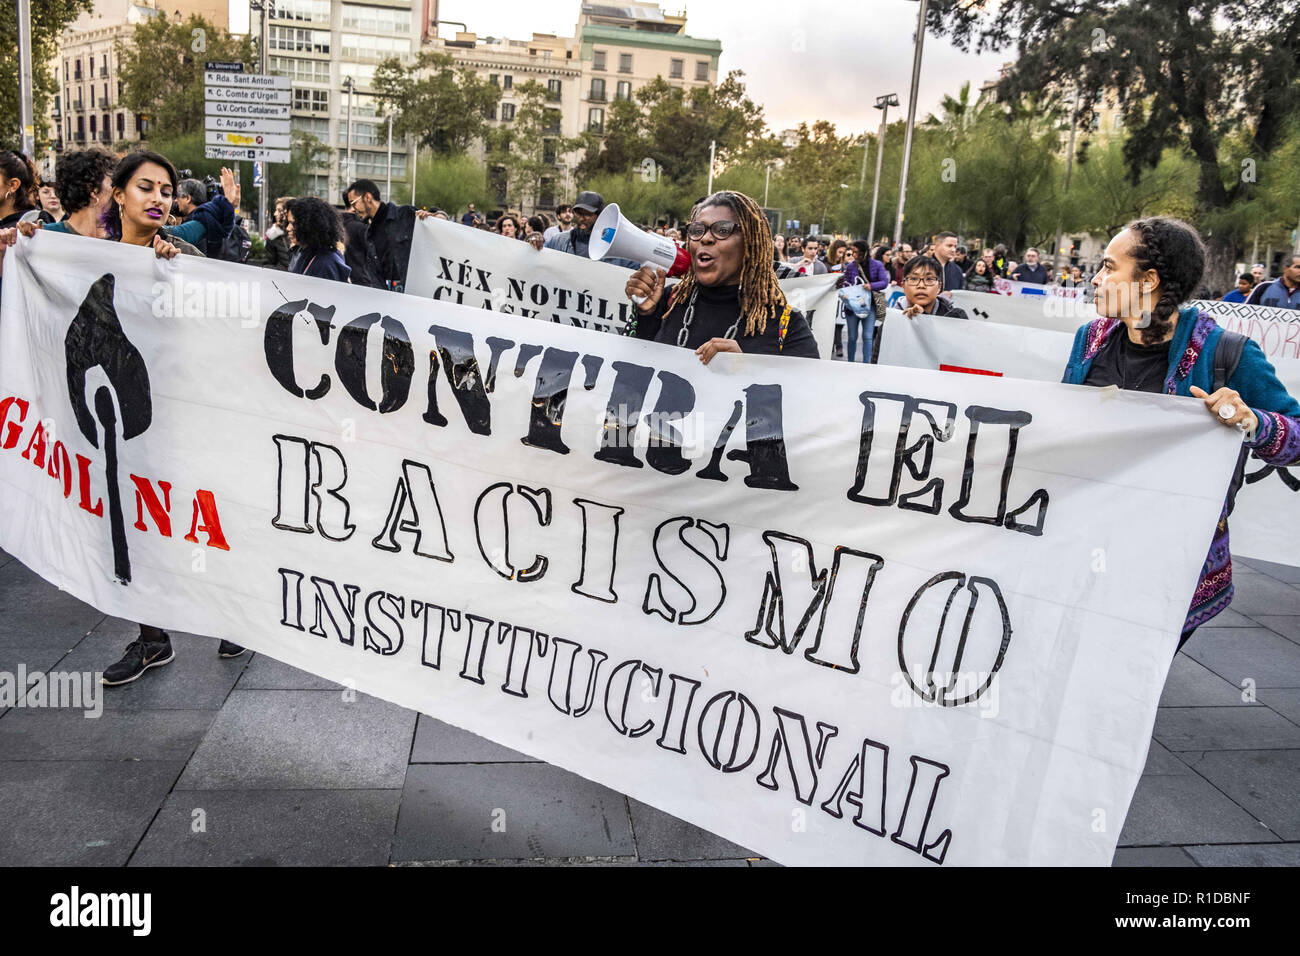 Barcelona, Catalonia, Spain. 11th Nov, 2018. A woman with a megaphone is seen behind a banner during the demonstration.A new manifestation against institutional racism has crossed the streets of the center of Barcelona. Accompanied by social organizations and the Trade Union of street vendors, more than 500 people have claimed to end racism in Barcelona and have denounced police identifications according to the color of their skin. Credit: Paco Freire/SOPA Images/ZUMA Wire/Alamy Live News - Stock Image